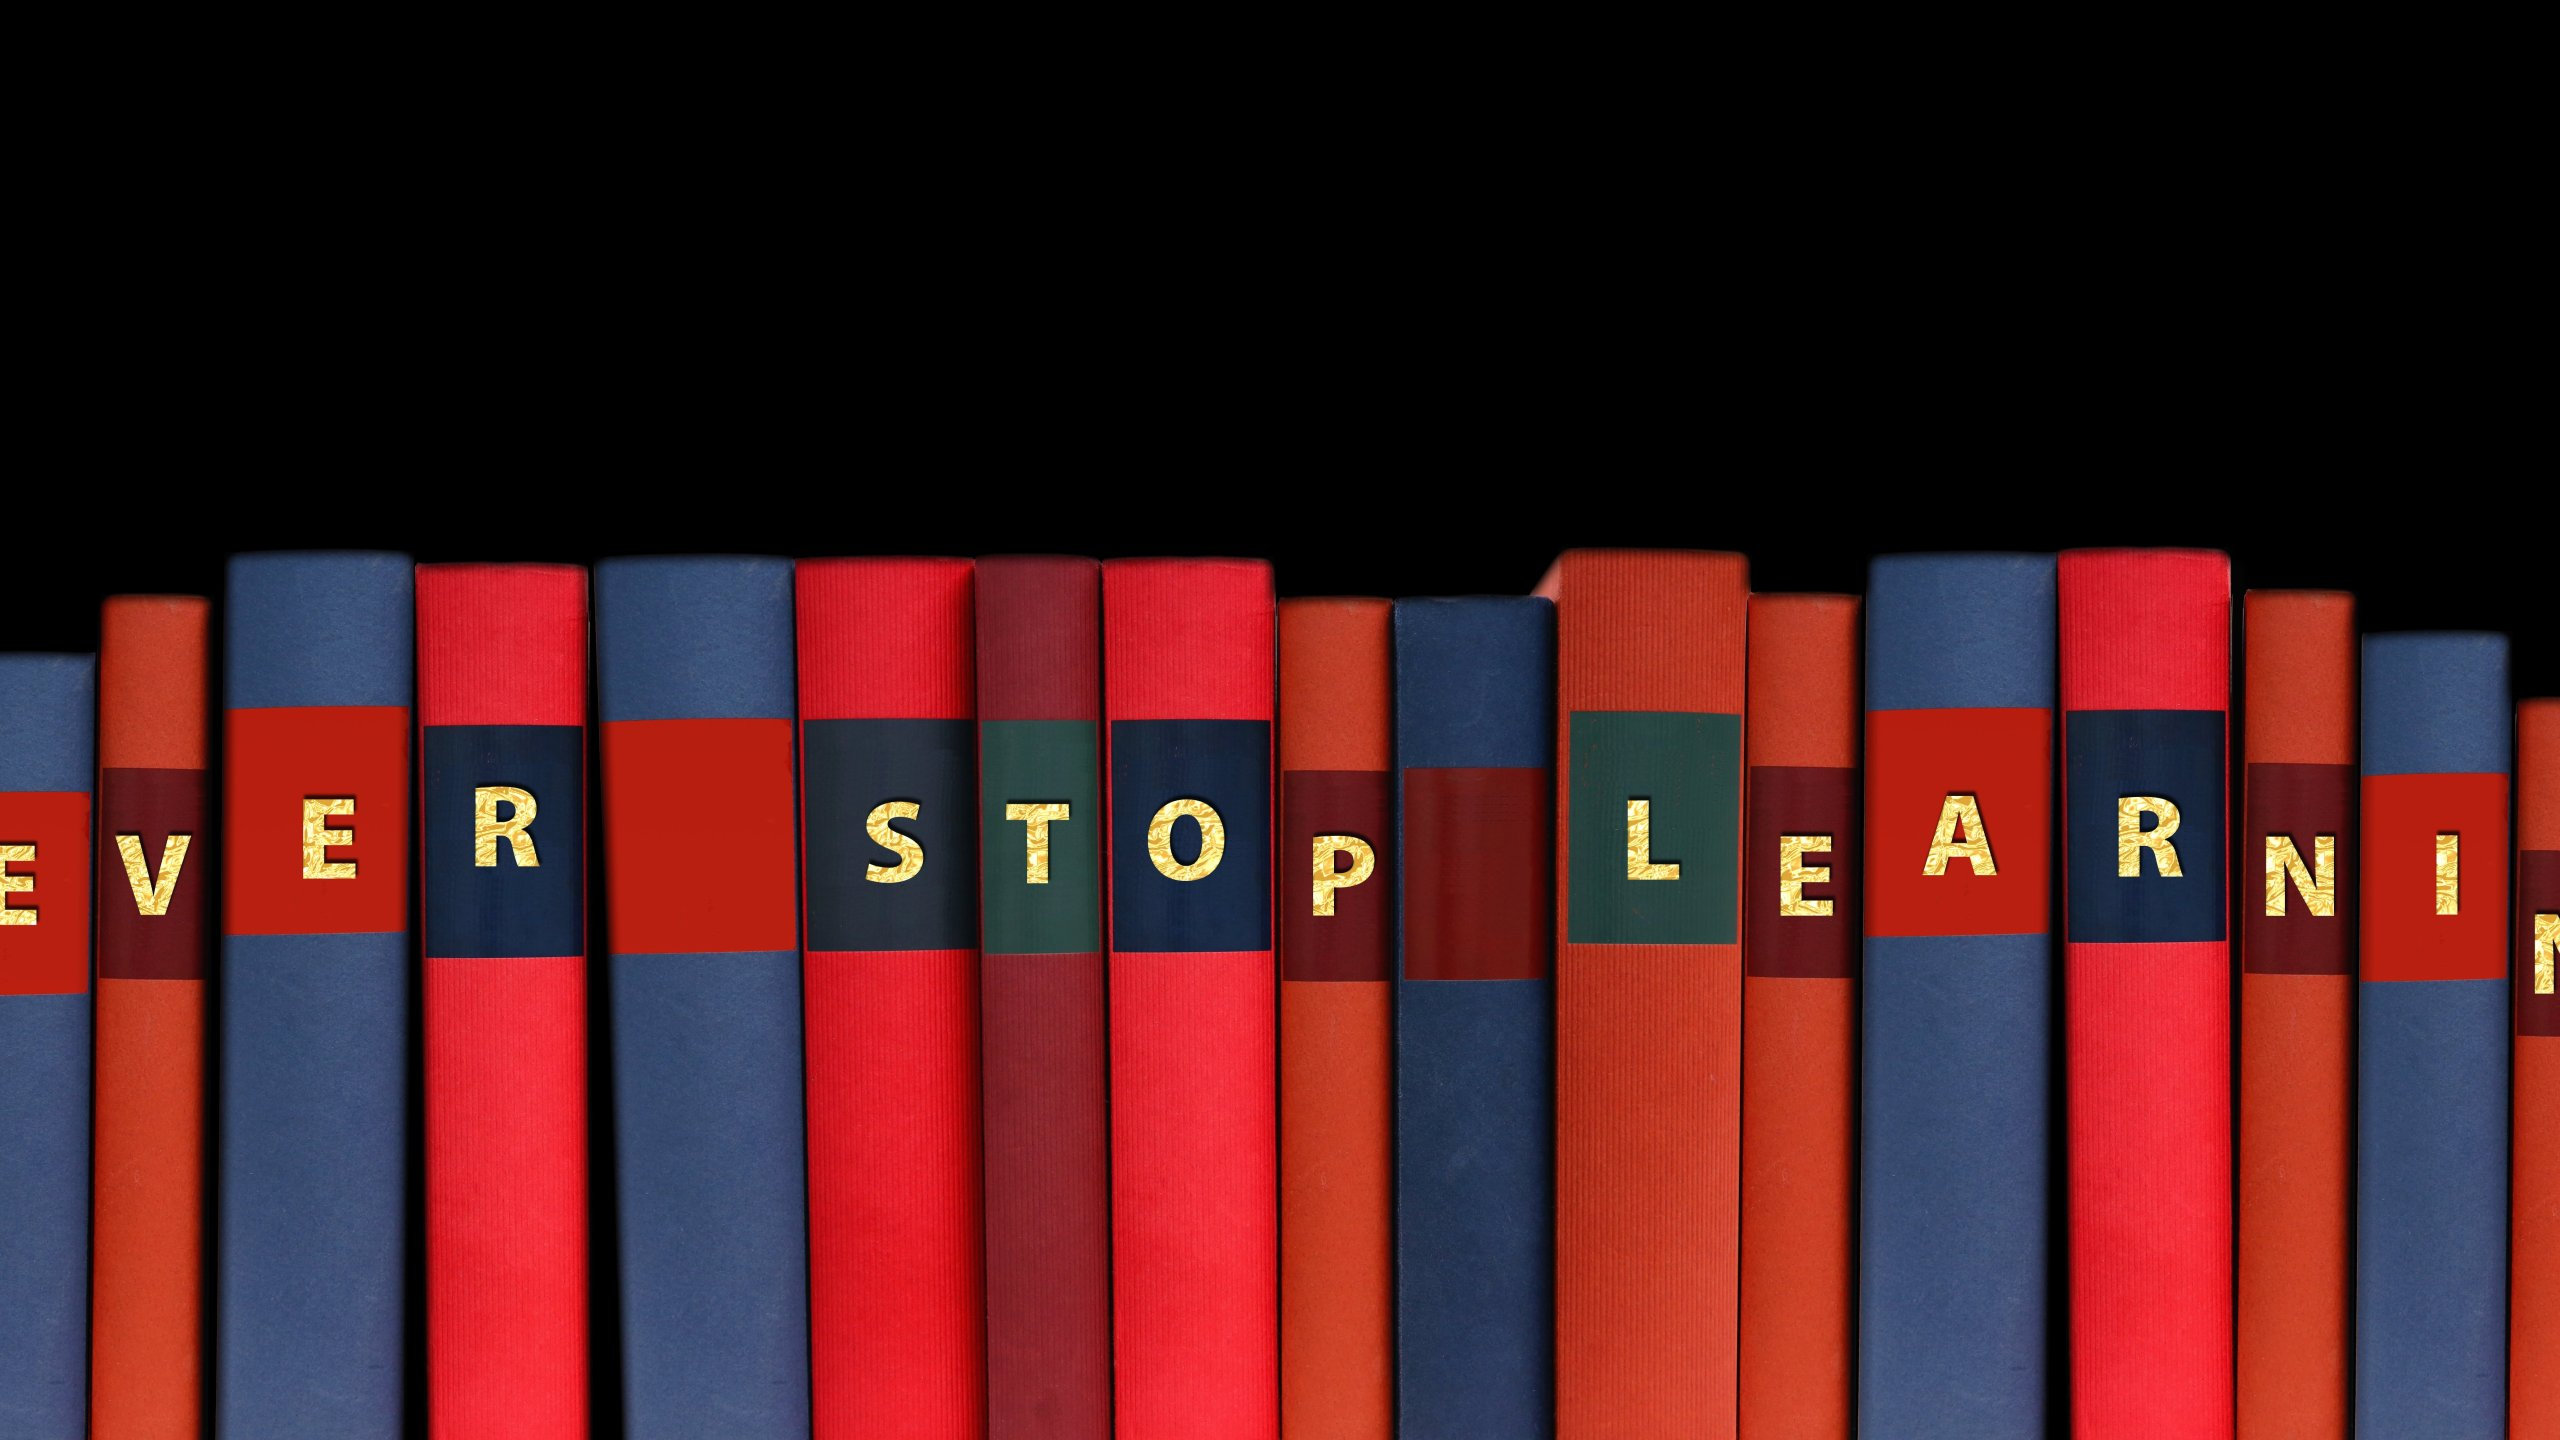 """Never Stop Learning"" on book spines"